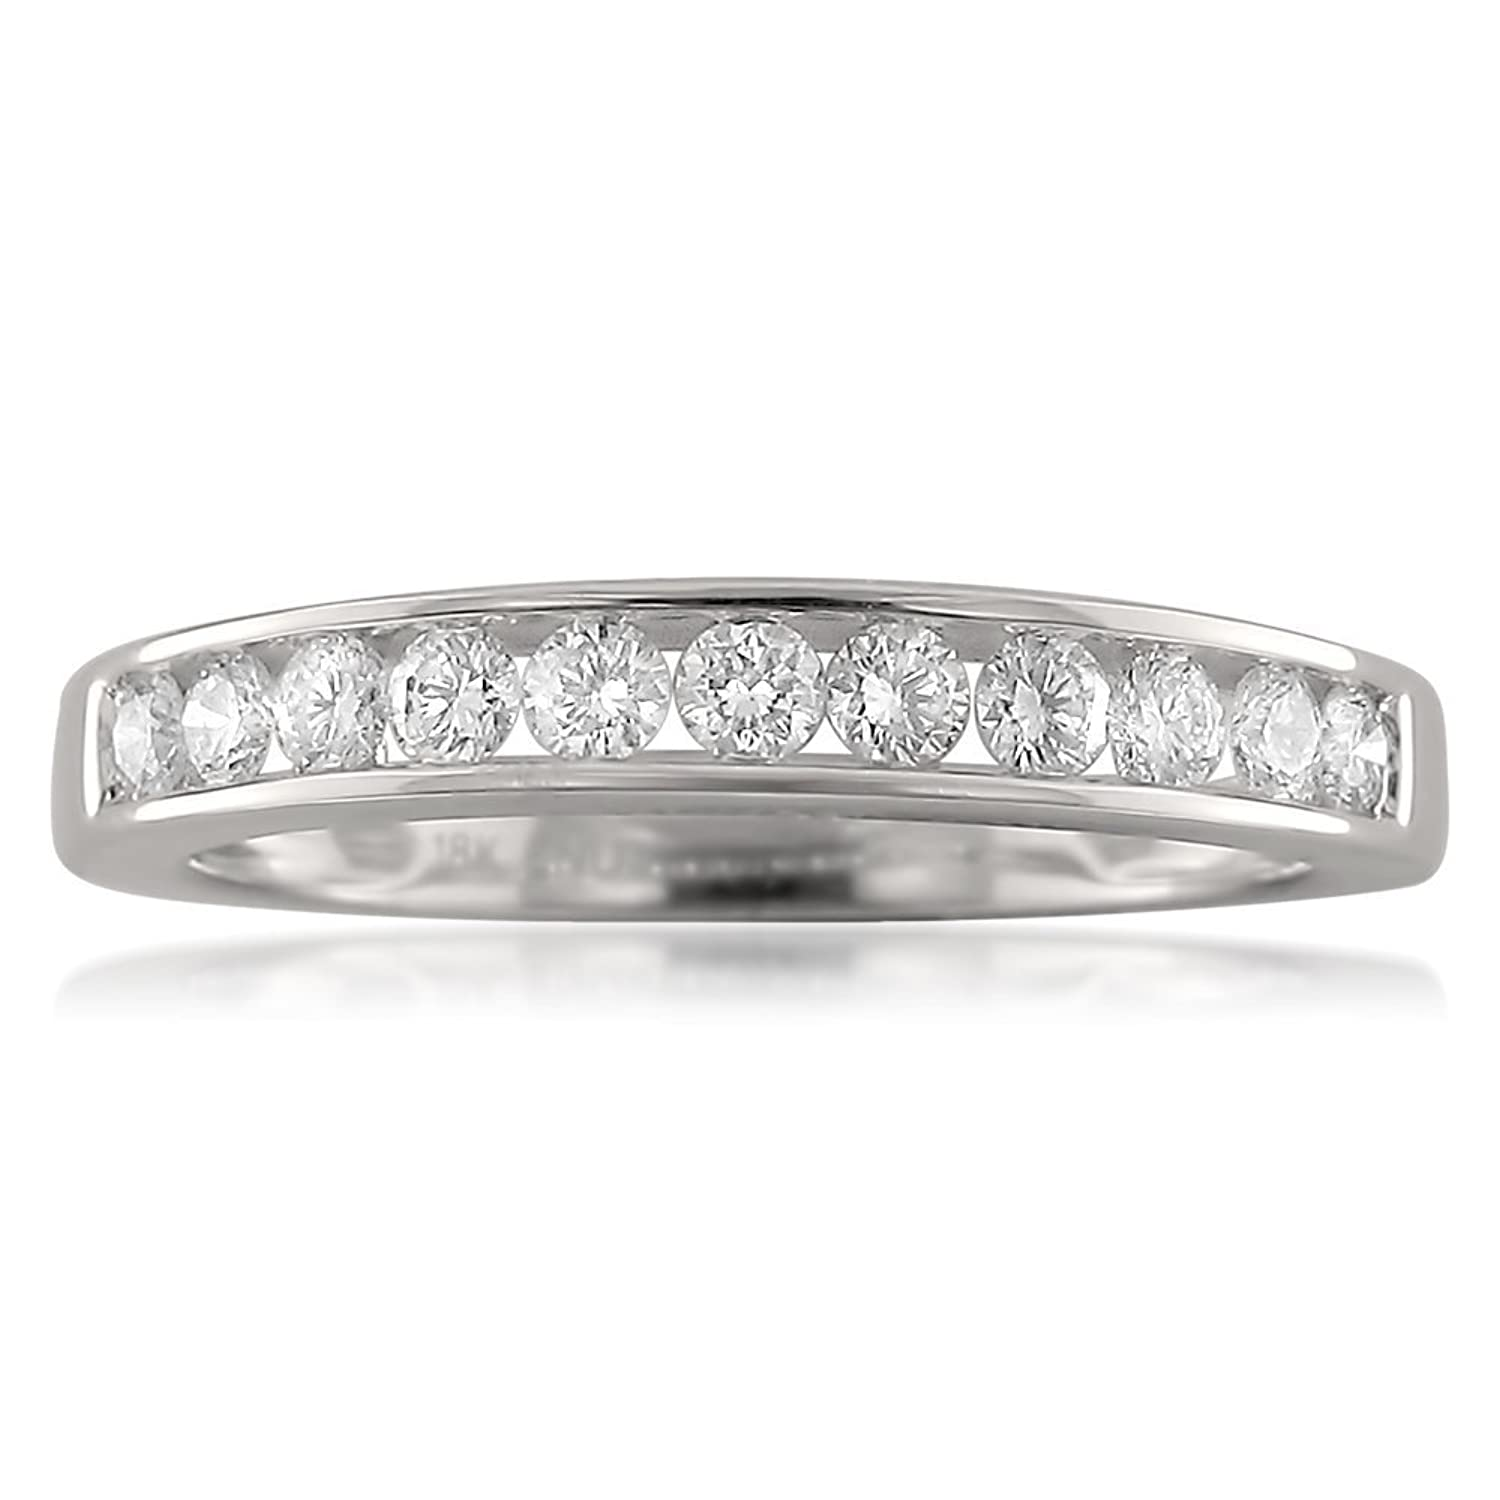 18k White Gold 11-Stone Round Diamond Bridal Wedding Band Ring (1/2 cttw, I-J, VS2-SI1)